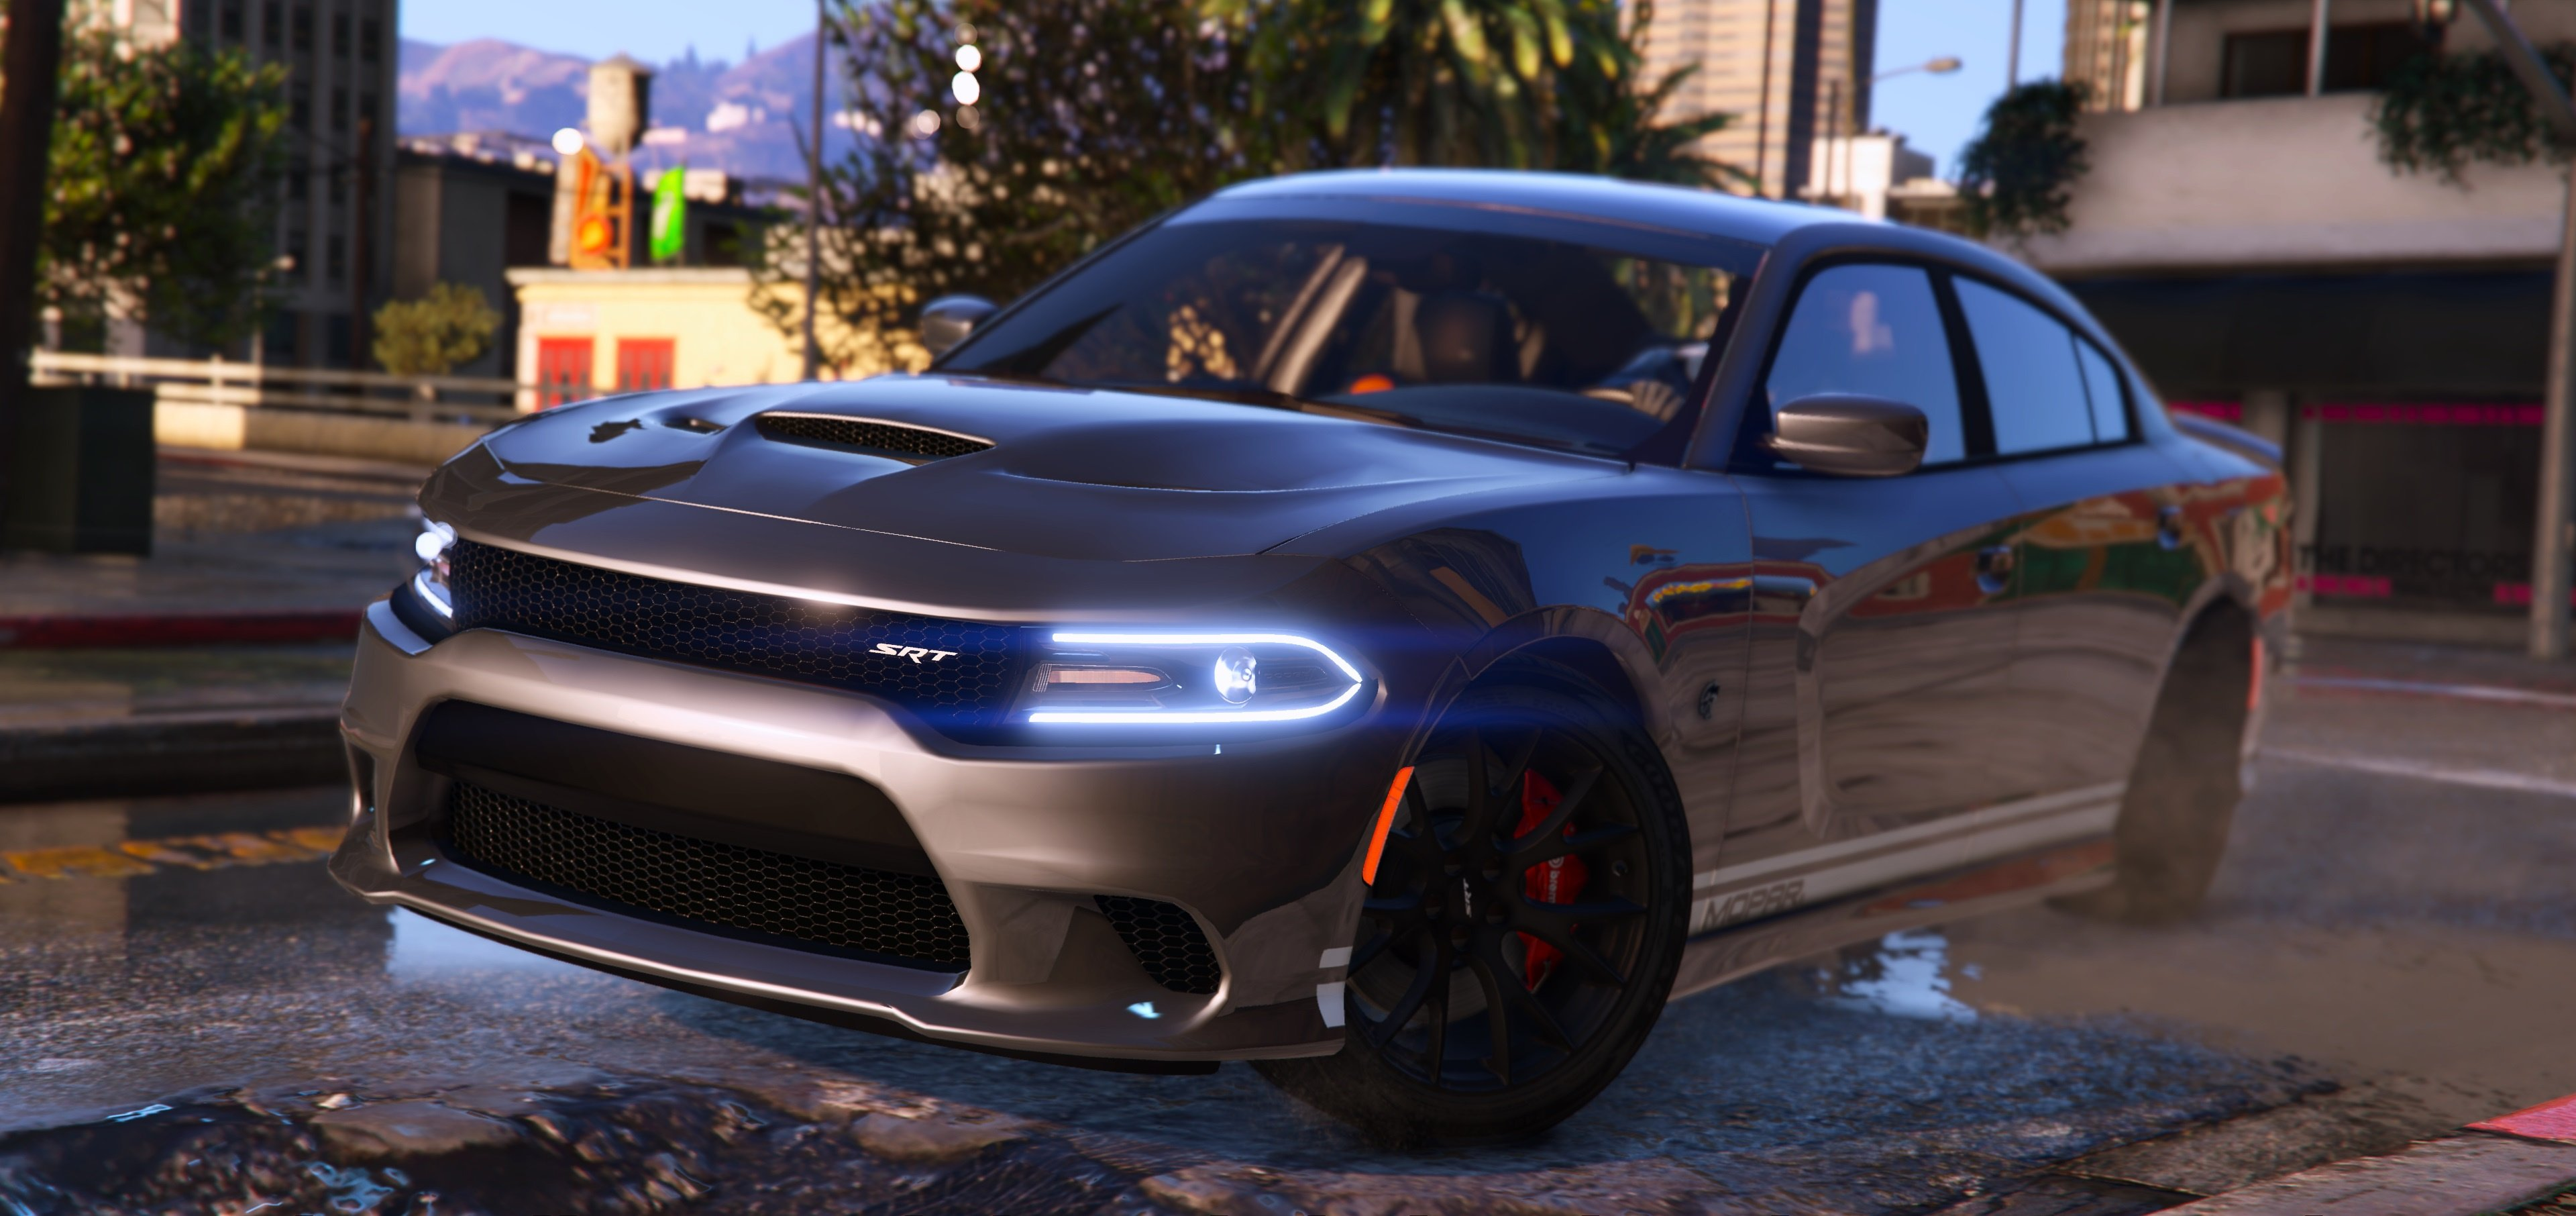 2016 Dodge Charger Sxt R T Srt 392 Hellcat Gta5 Mods Com